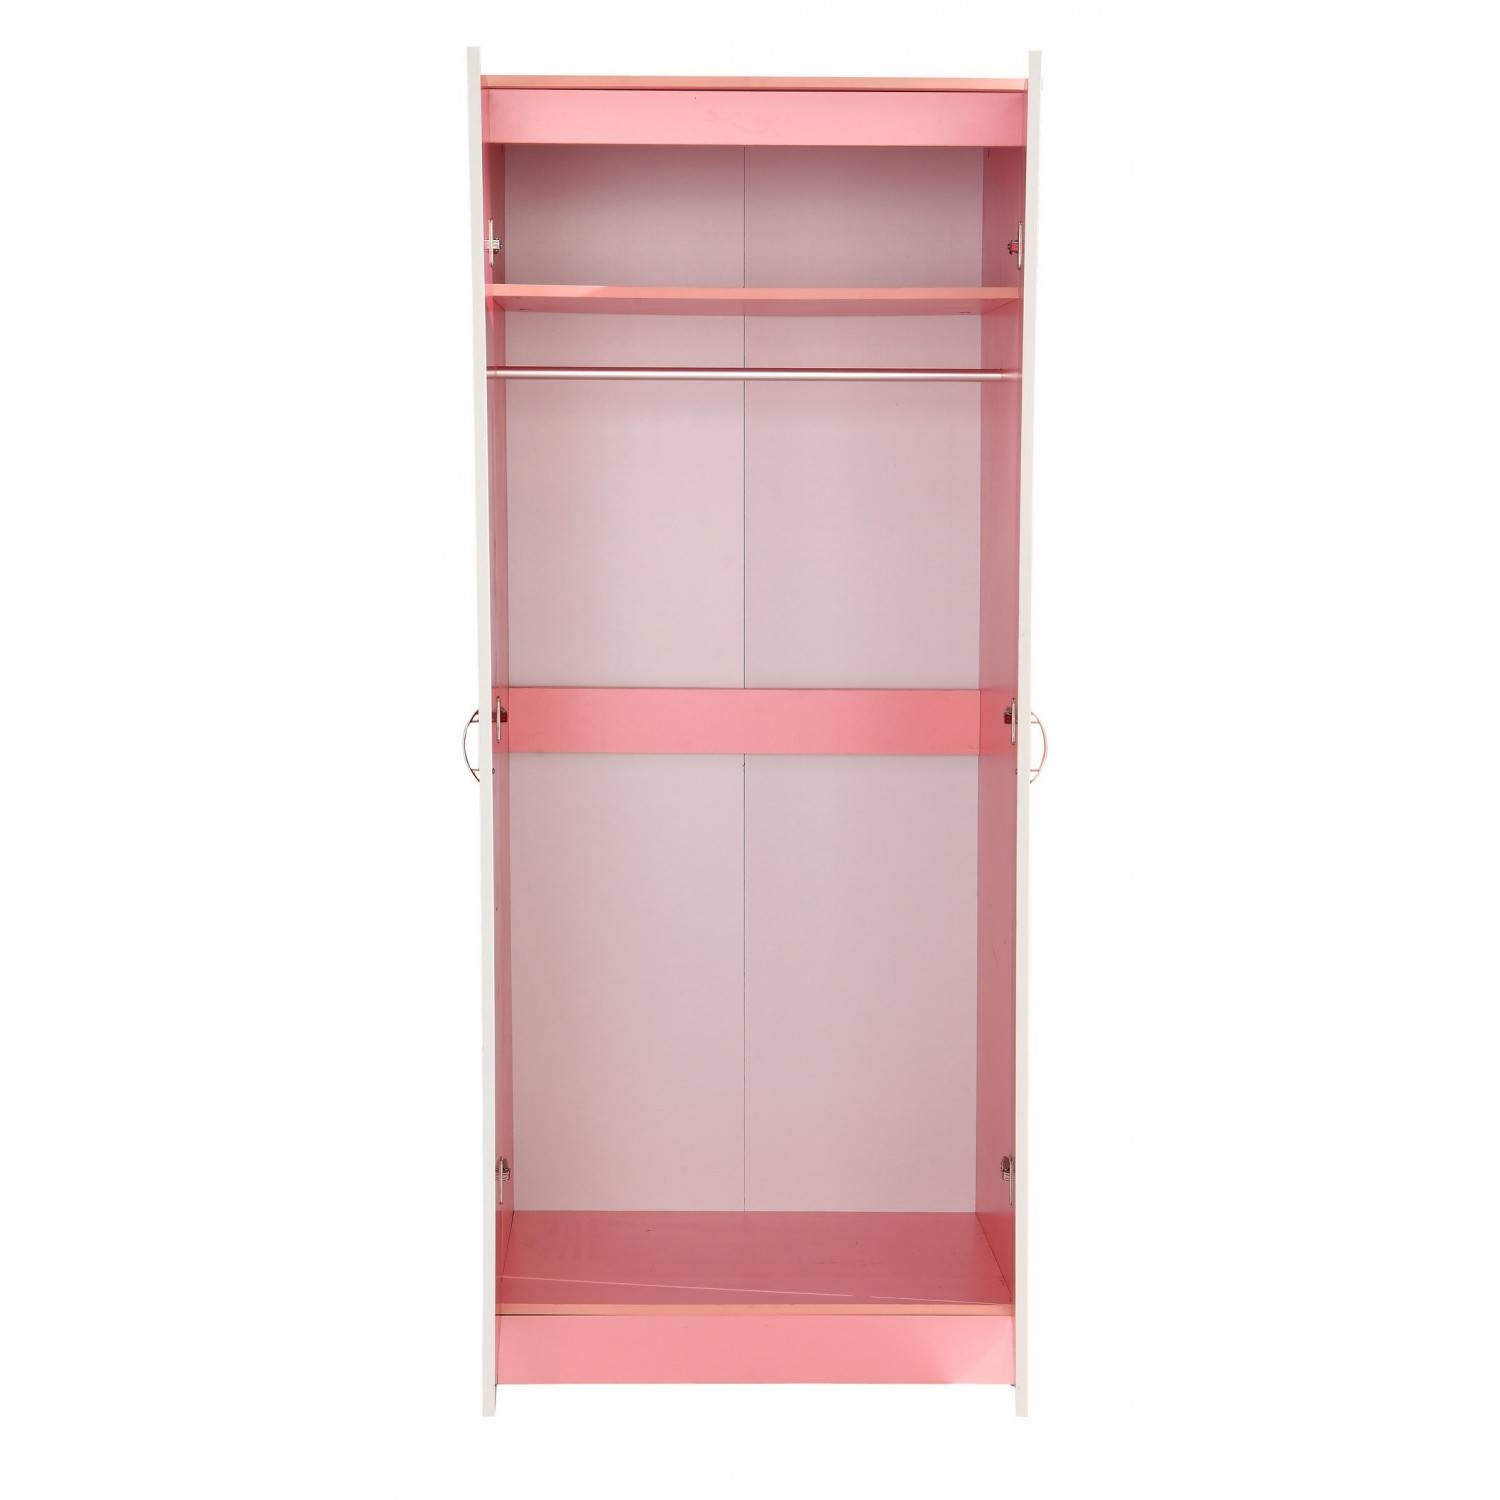 Kale High Gloss Two Door Wardrobe In Pink On Pink intended for Pink High Gloss Wardrobes (Image 6 of 15)